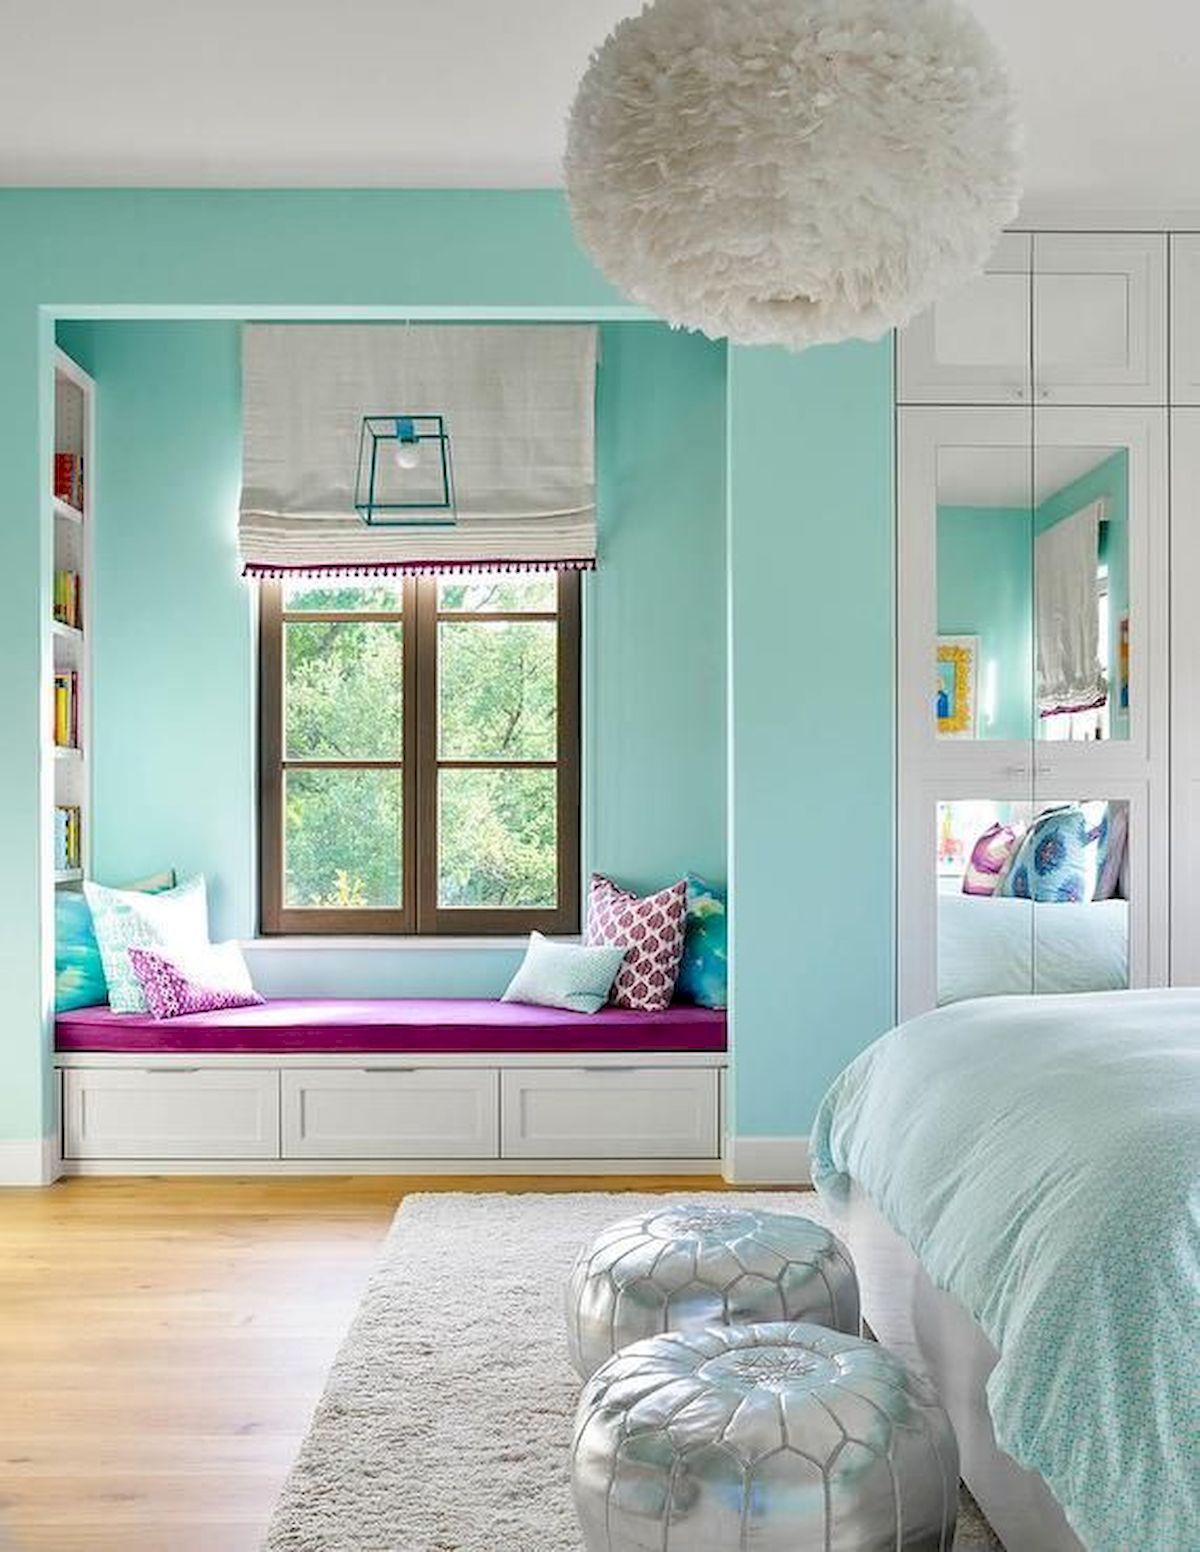 The Idea of Window Seat For Your Bedroom images